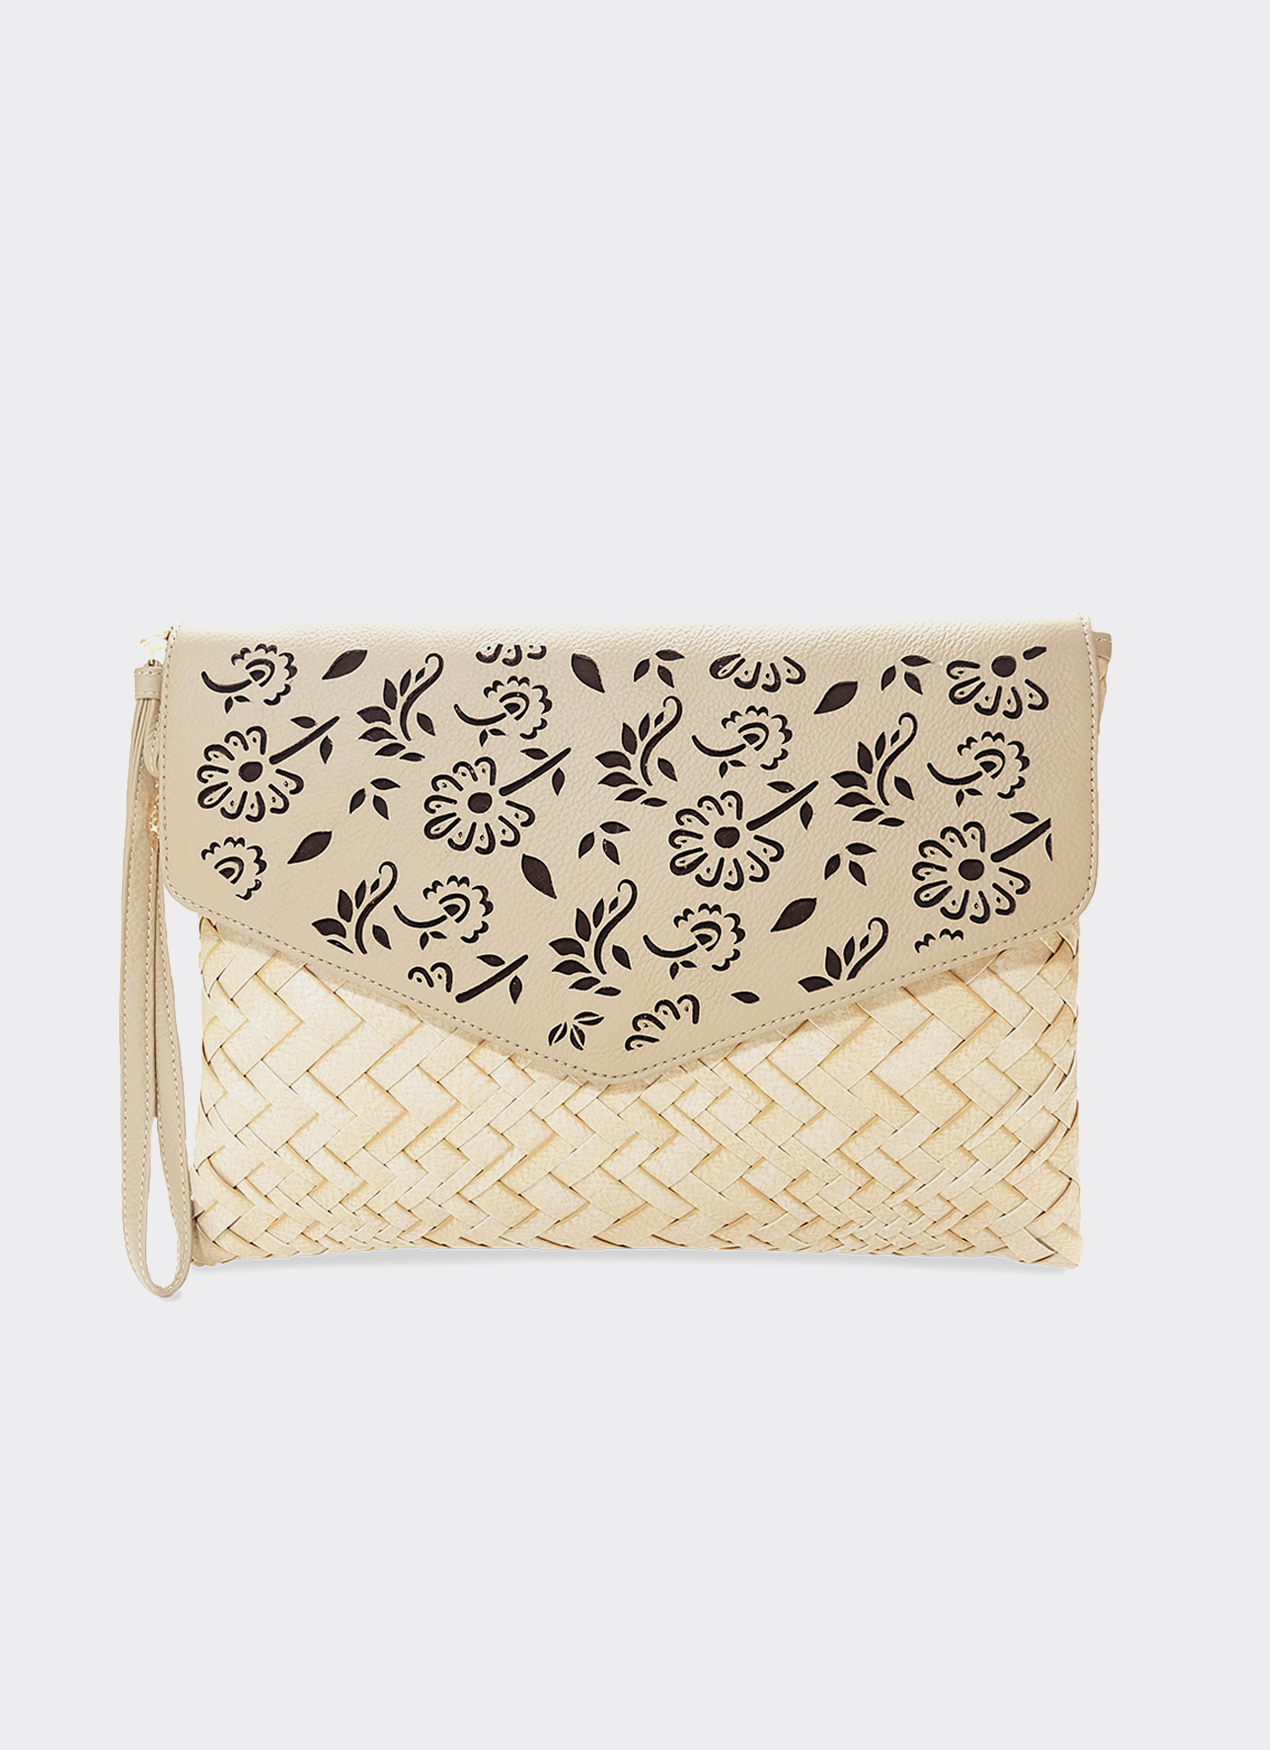 Chameo Couture Tawny Mae Parang Clutch Bag